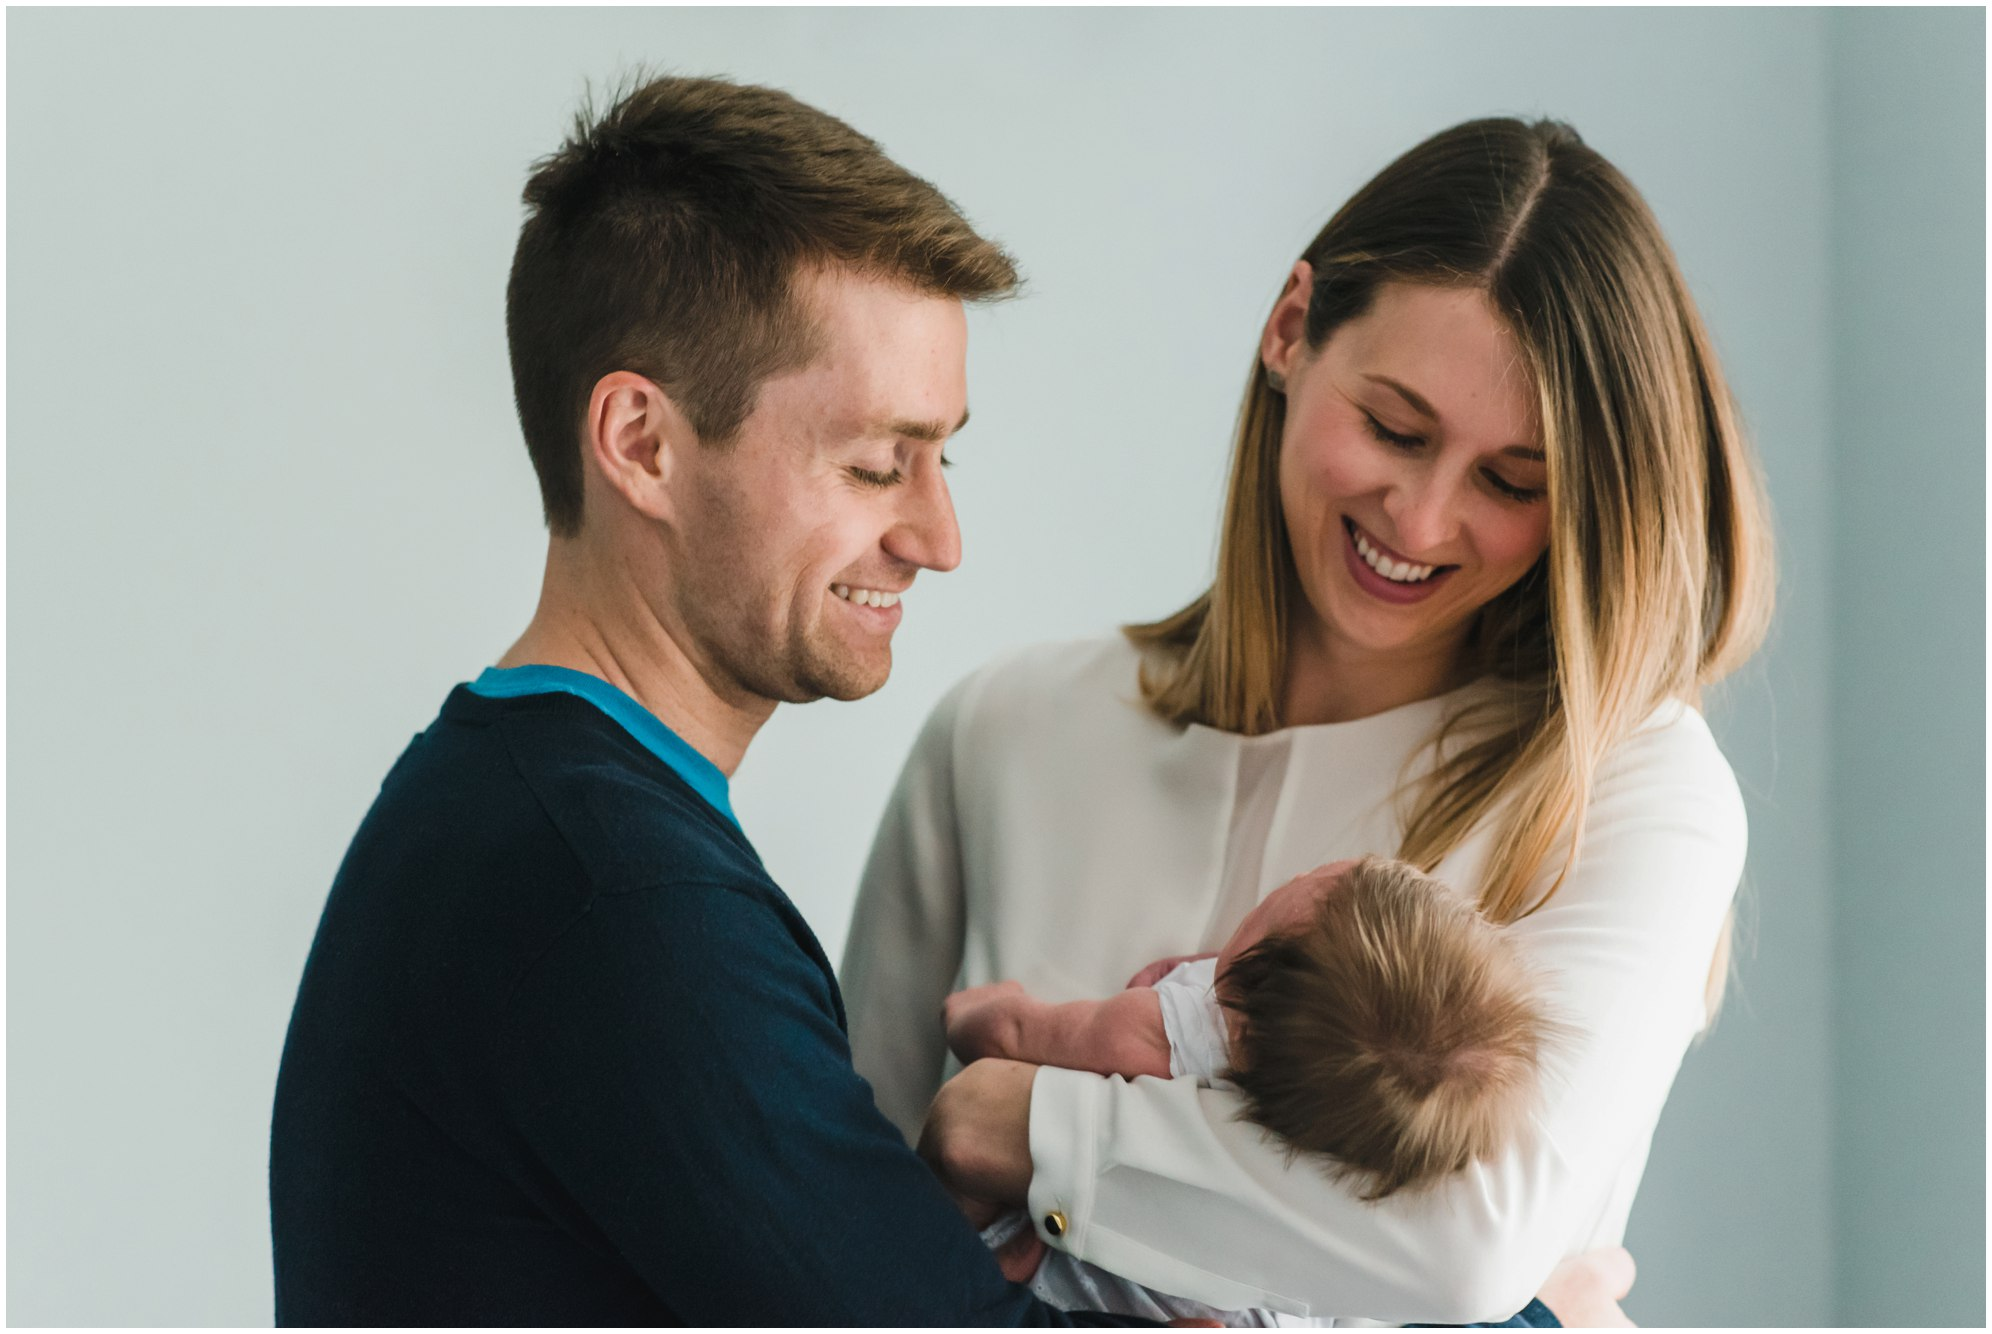 Parents smiling and holding their daughter during their Toronto Newborn Lifestyle photos